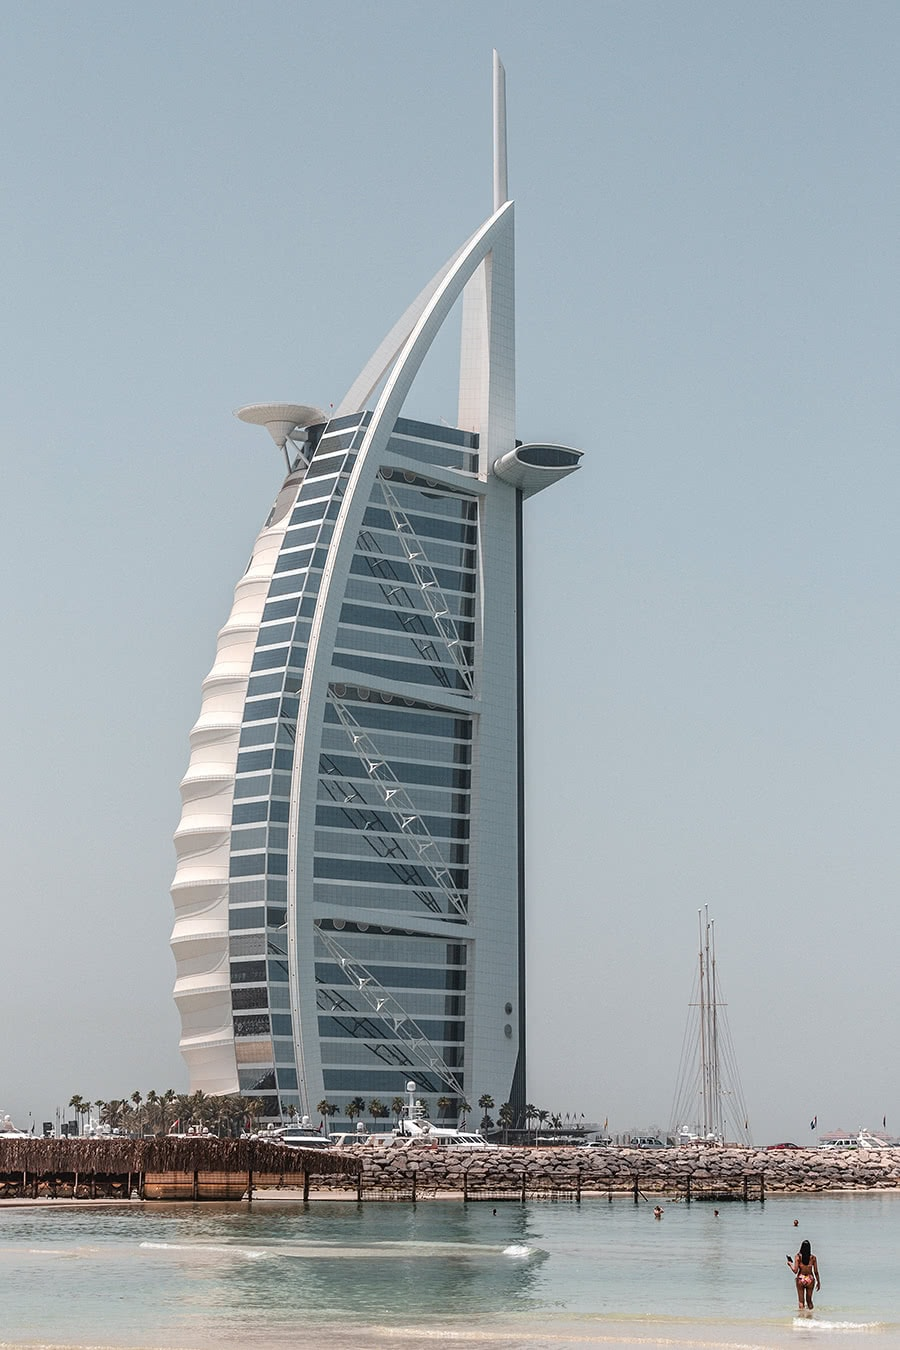 View of the Burj Al Arab hotel in Dubai.